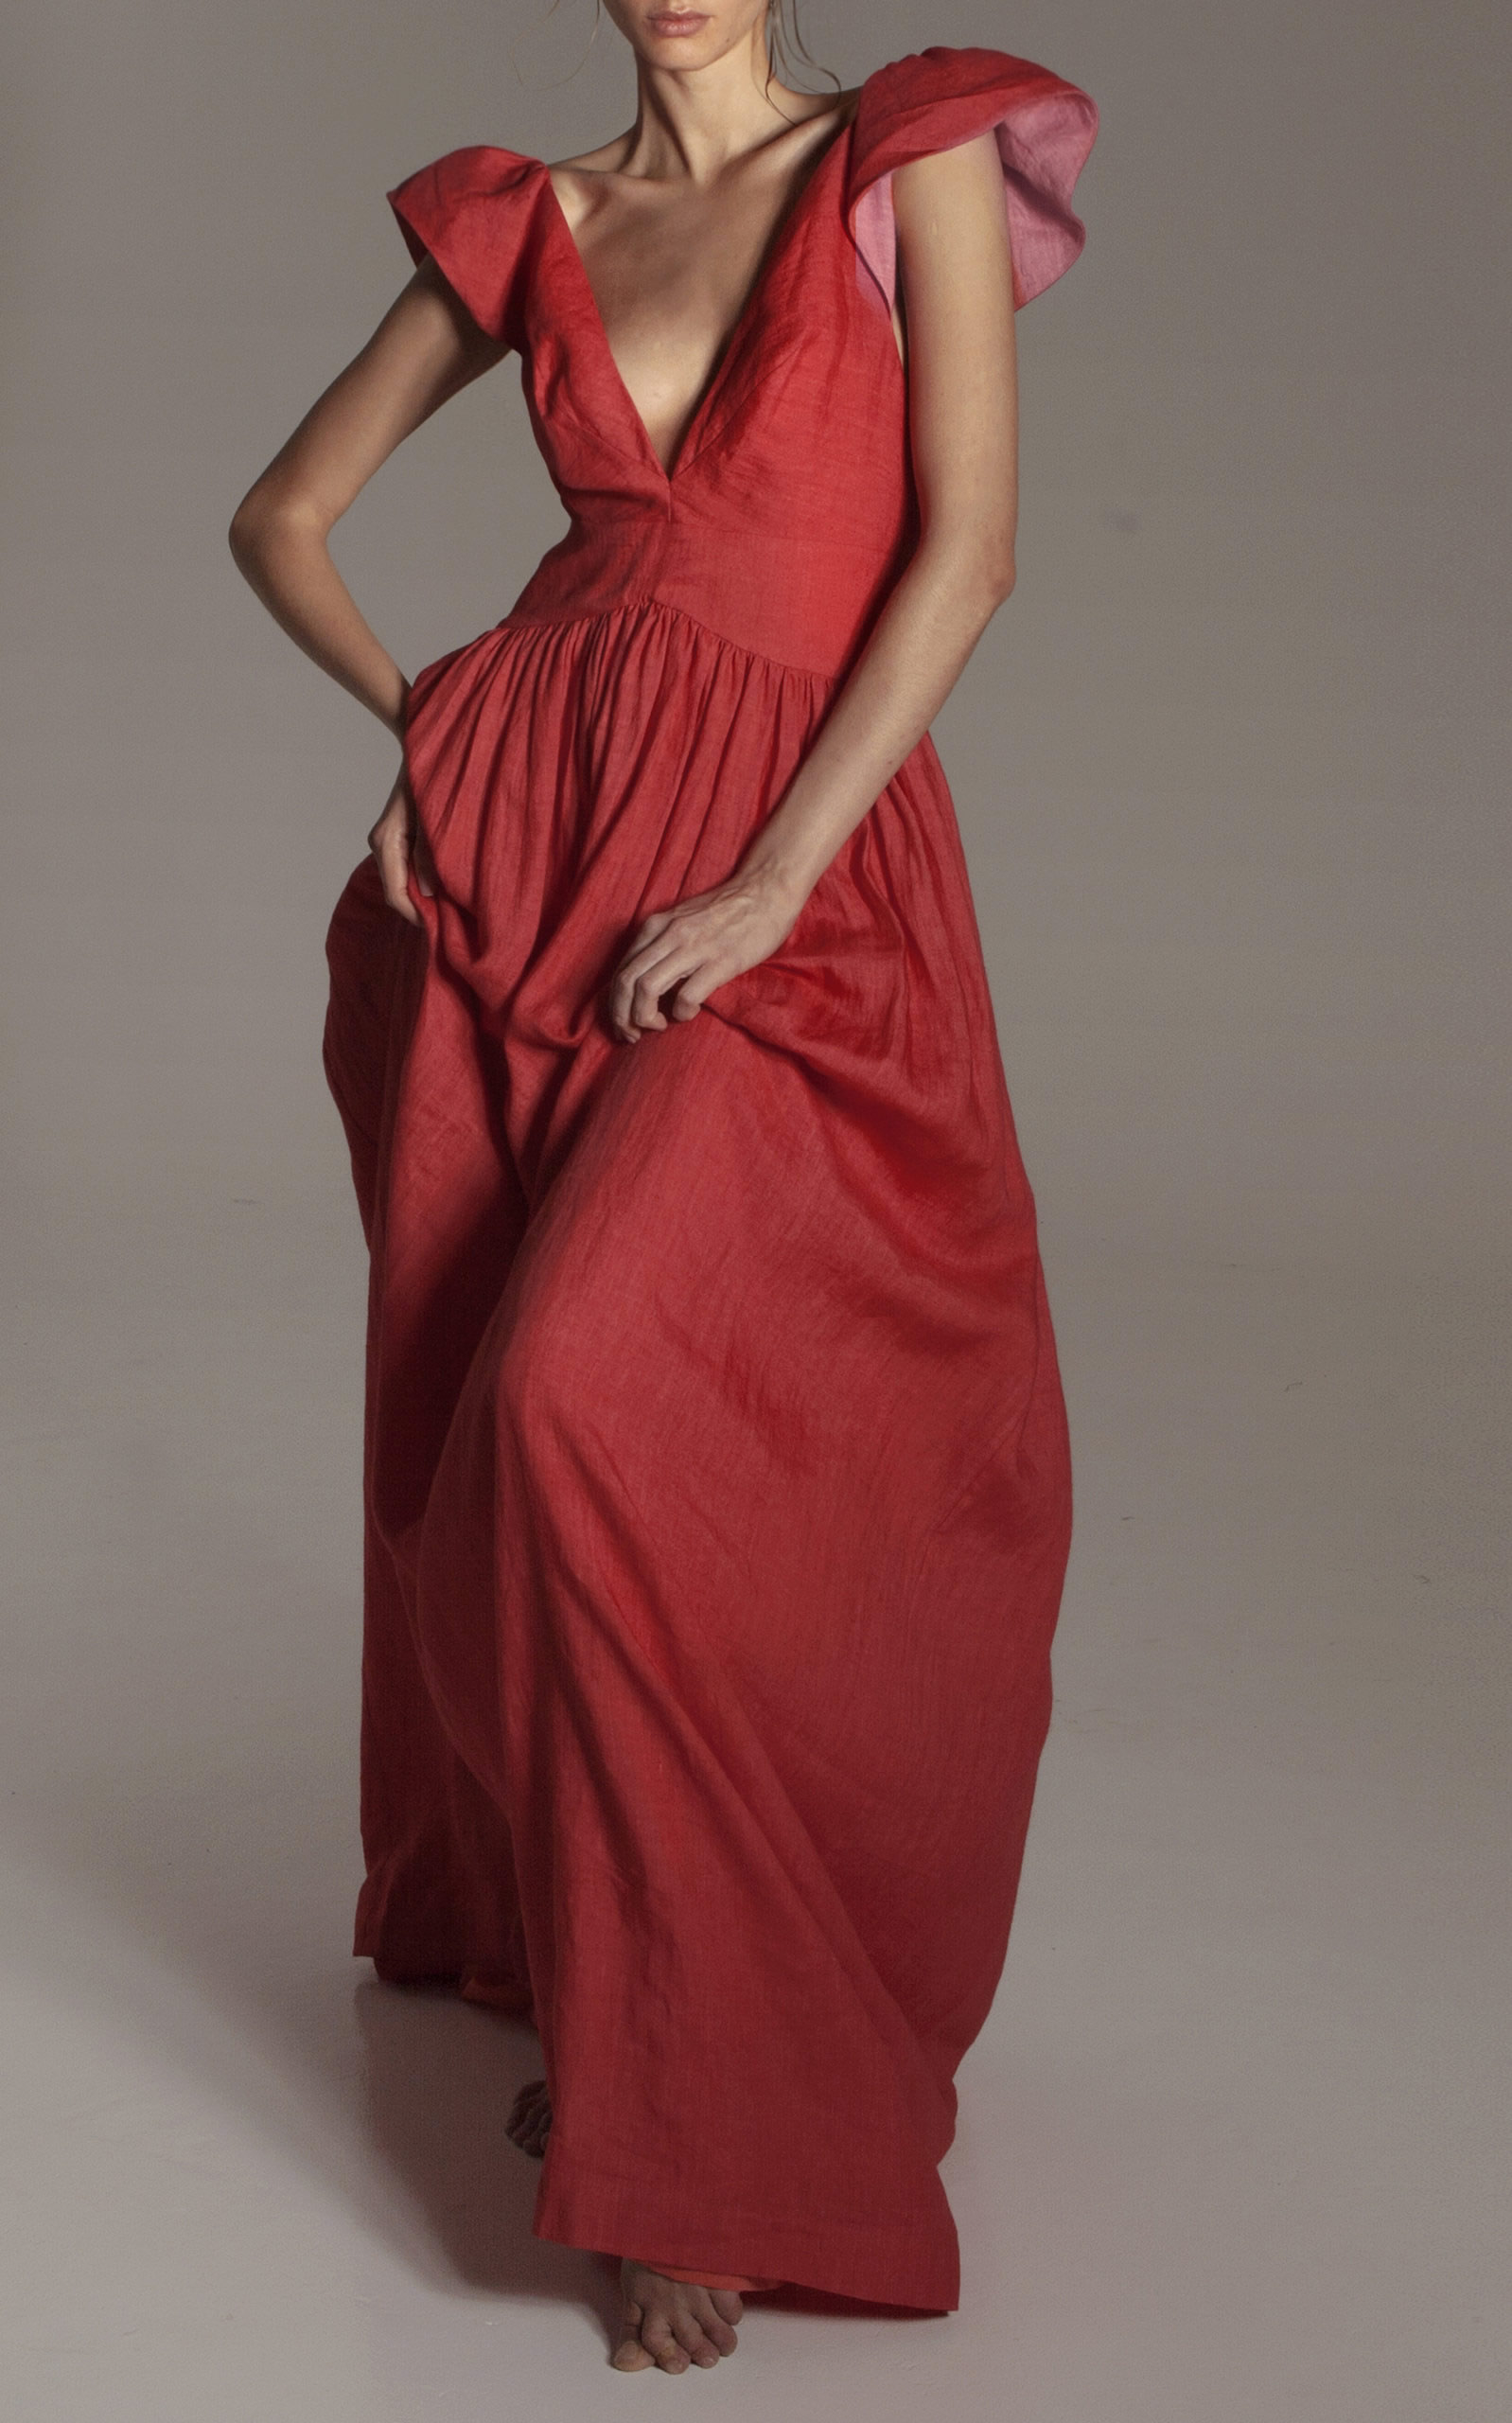 Kalita - Destination Wear - Red Persephone Linen Day Dress